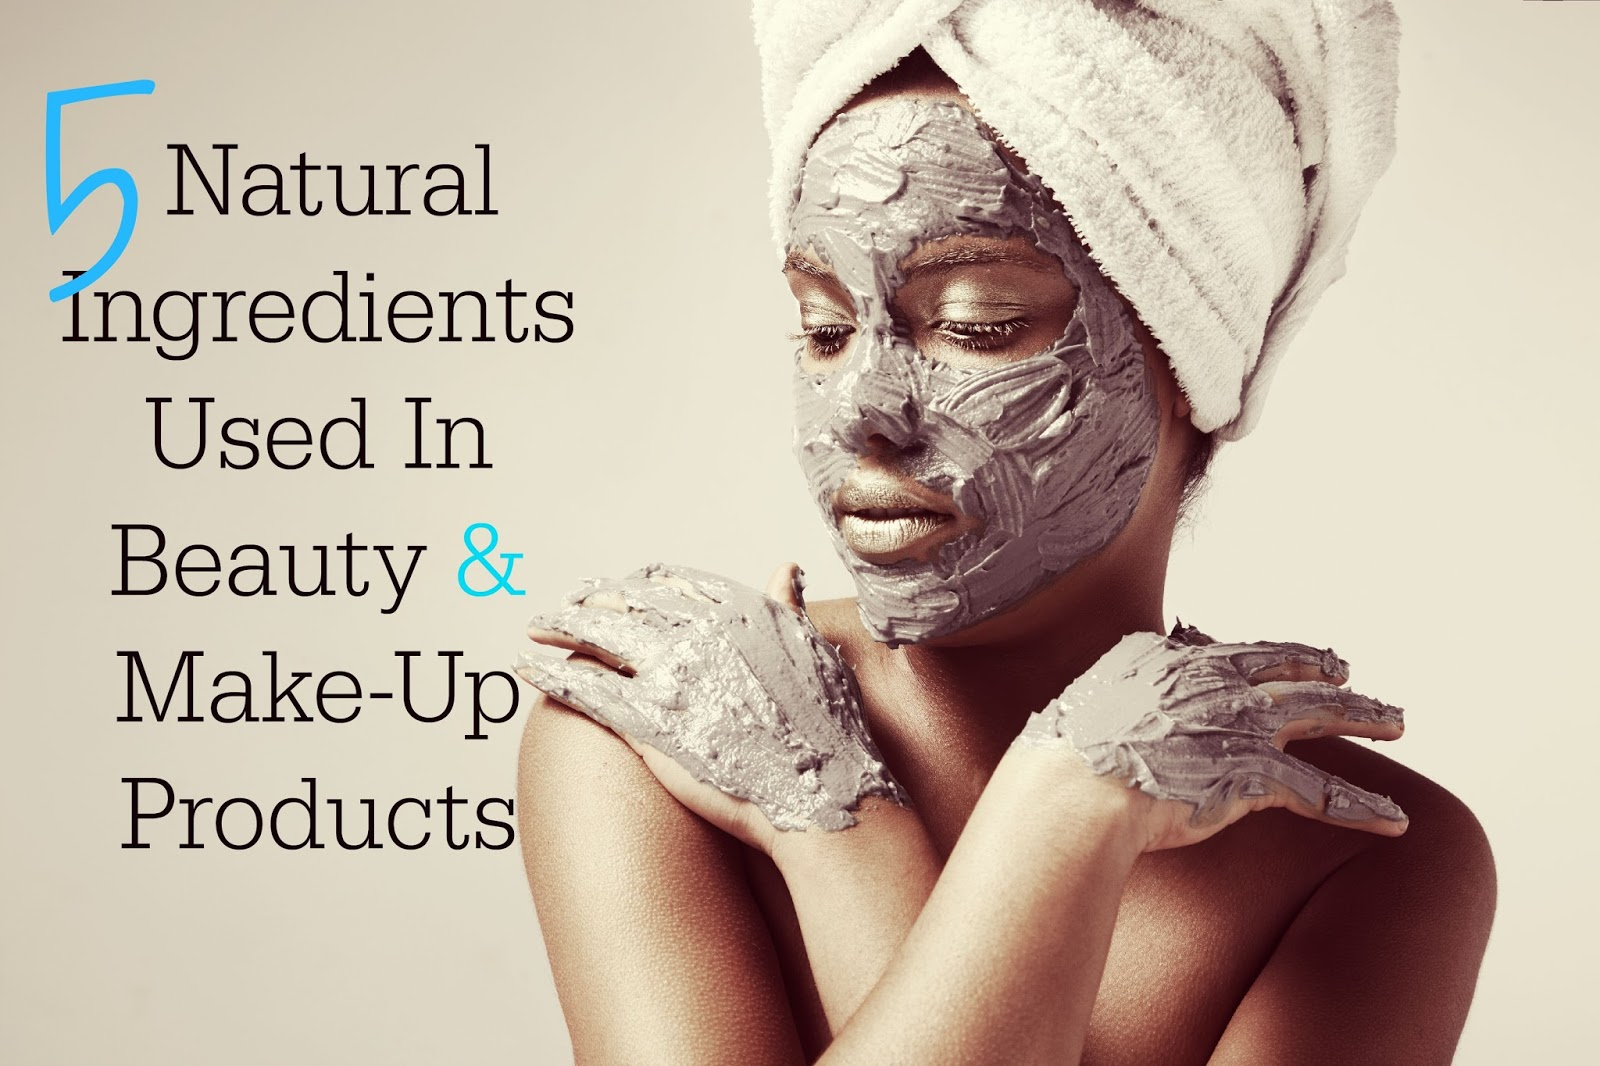 5 Natural Ingredients Used In Beauty & Make Up Products